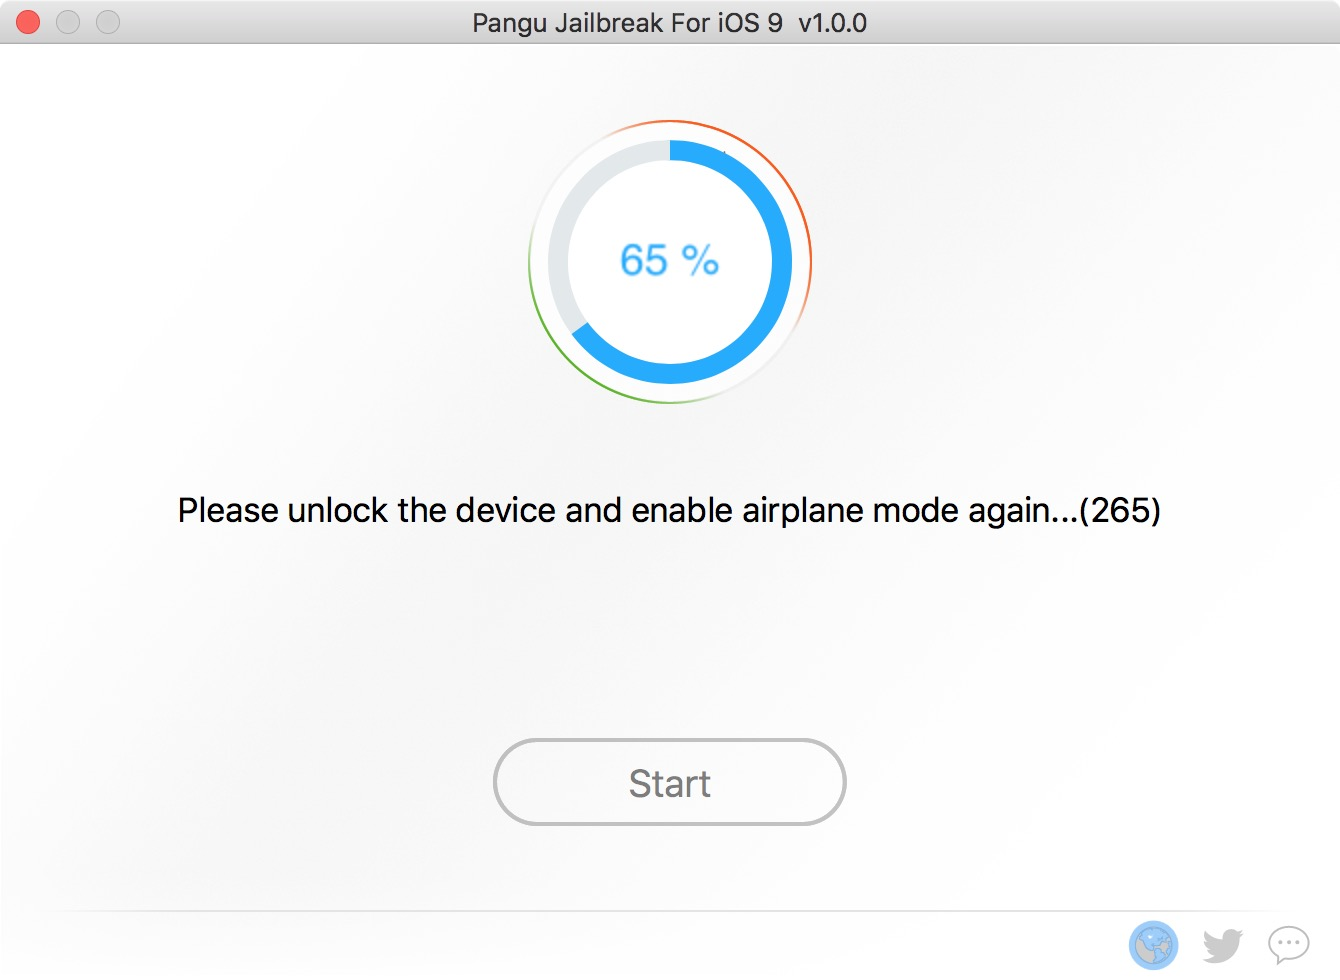 6. Enable Airplane Mode again